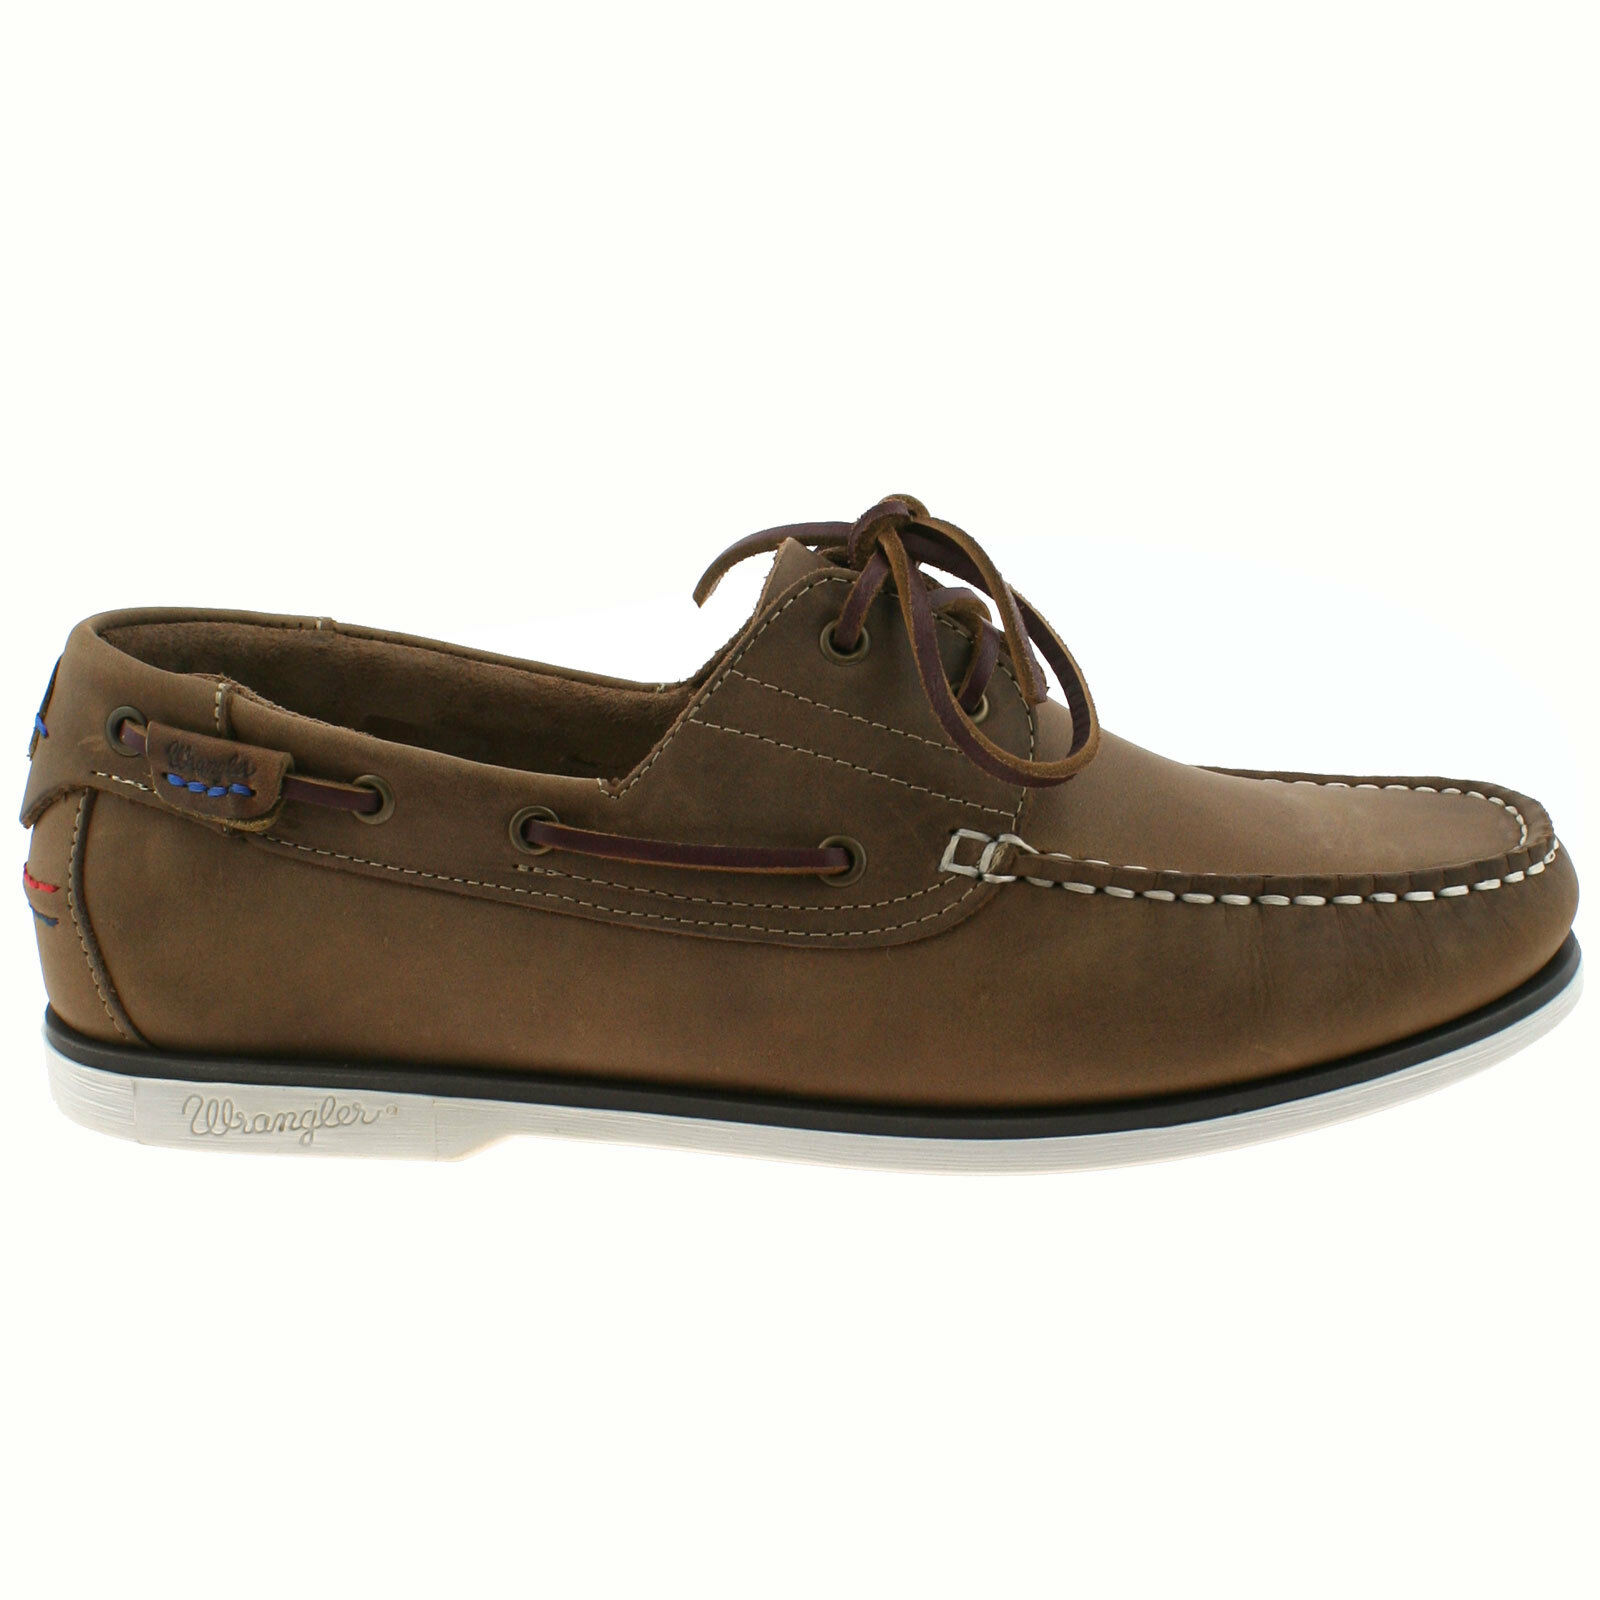 Herren WRANGLER CRAZY HORSE BROWN OCEAN LEATHER LACE LACE LEATHER UP BOAT DECK Schuhe WM181120 20c3e3